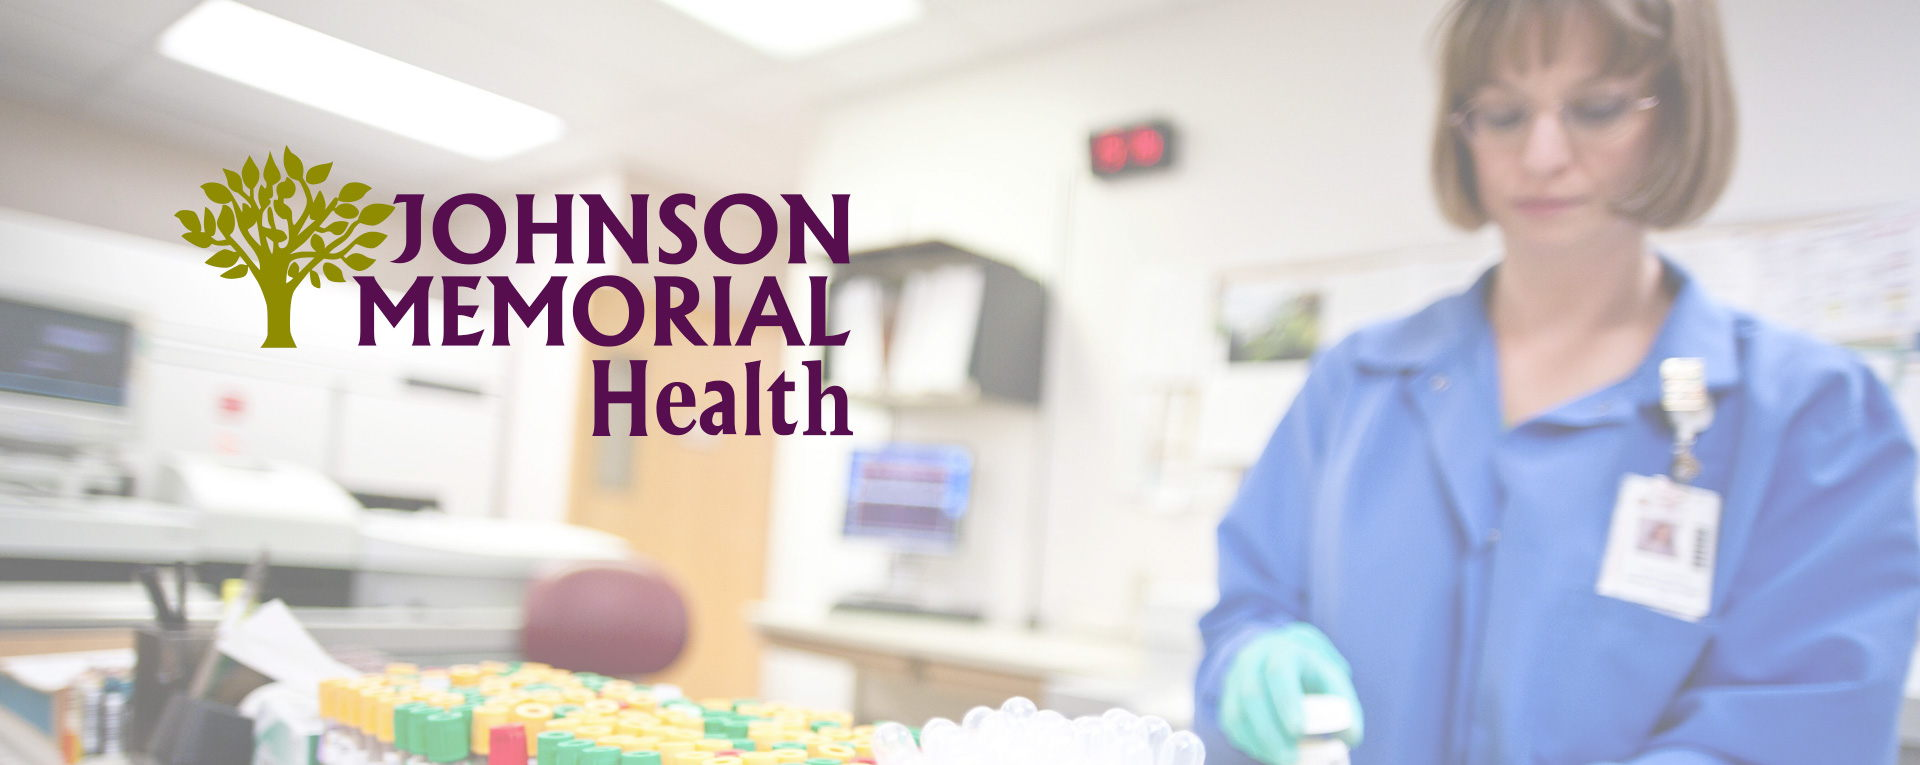 Johnson Memorial Health